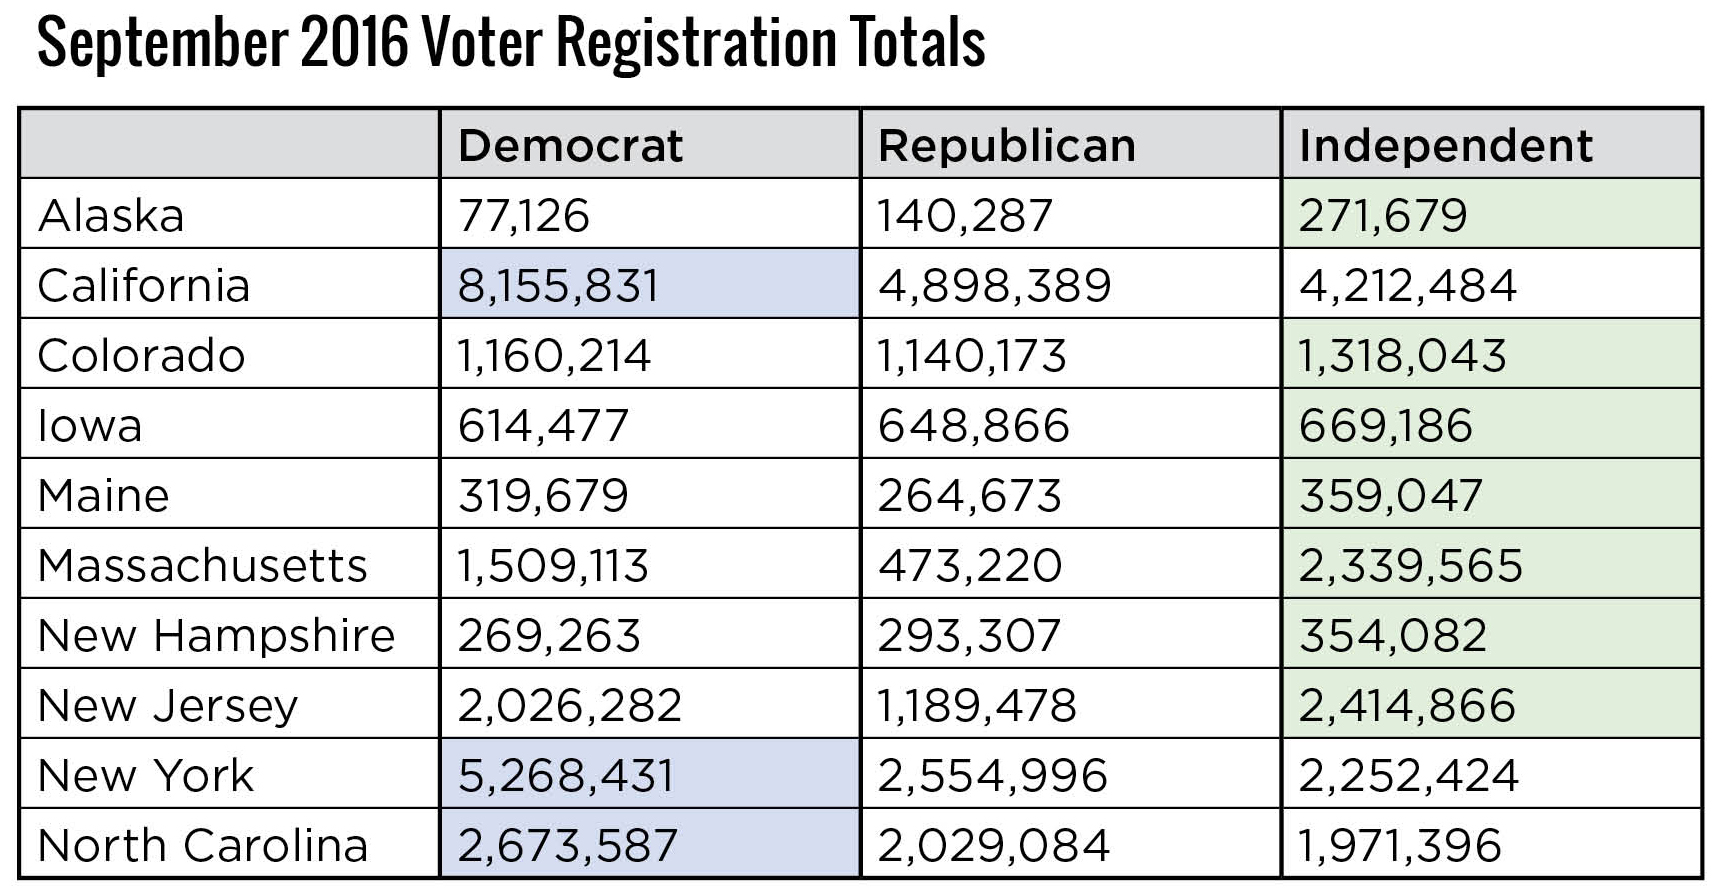 September 2016 Voter Registration Totals